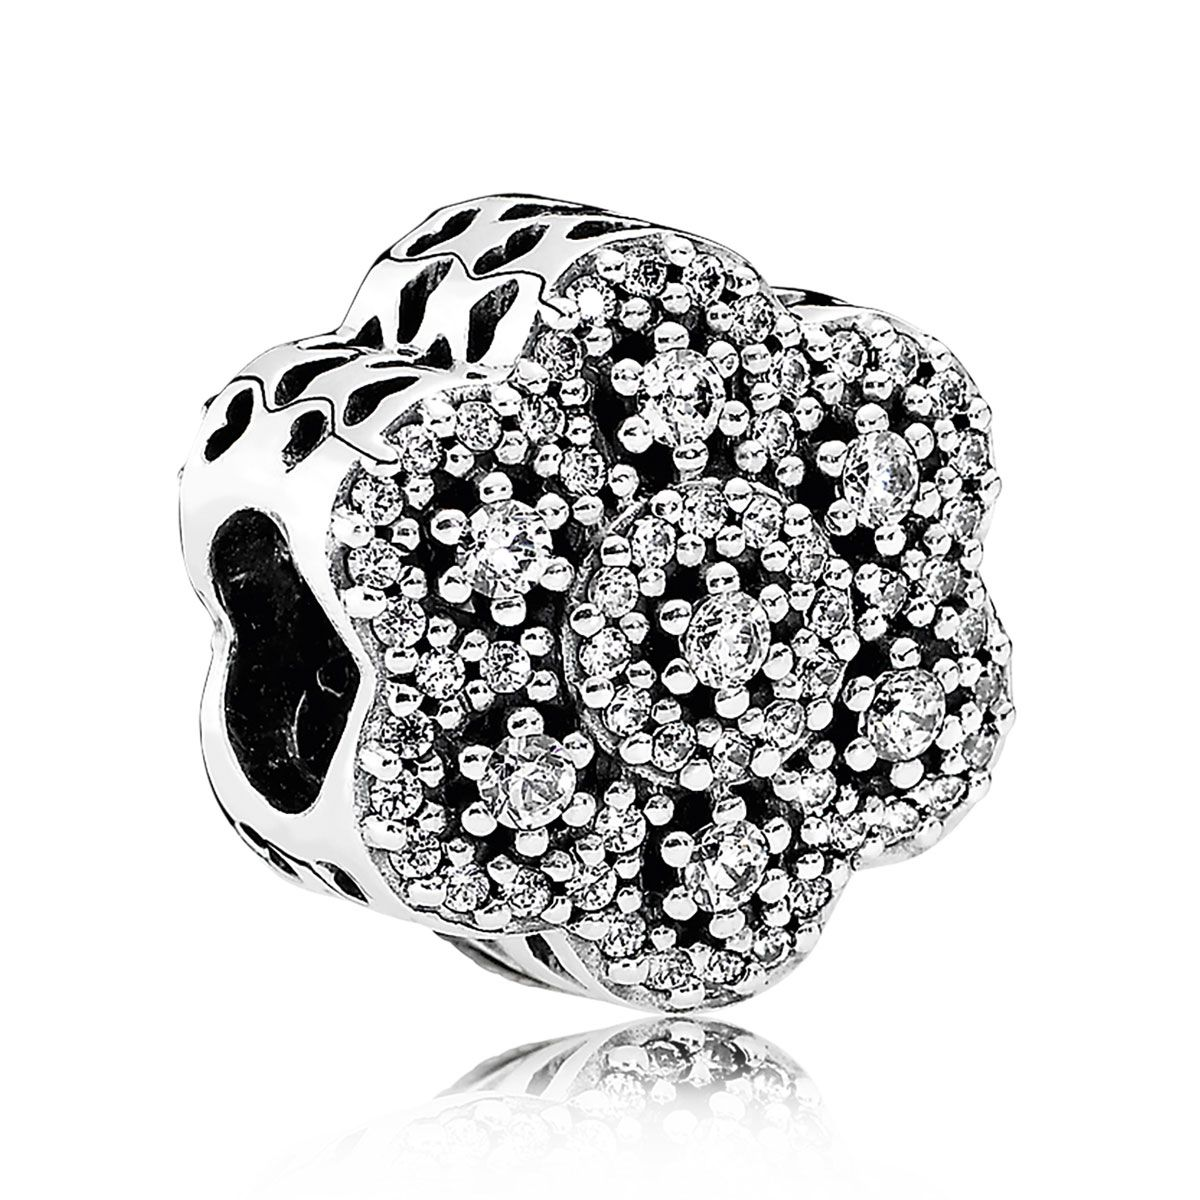 7e4a5d83680b5 PANDORA Crystalized Floral, Clear CZ Charm   daisies in 2019 ...